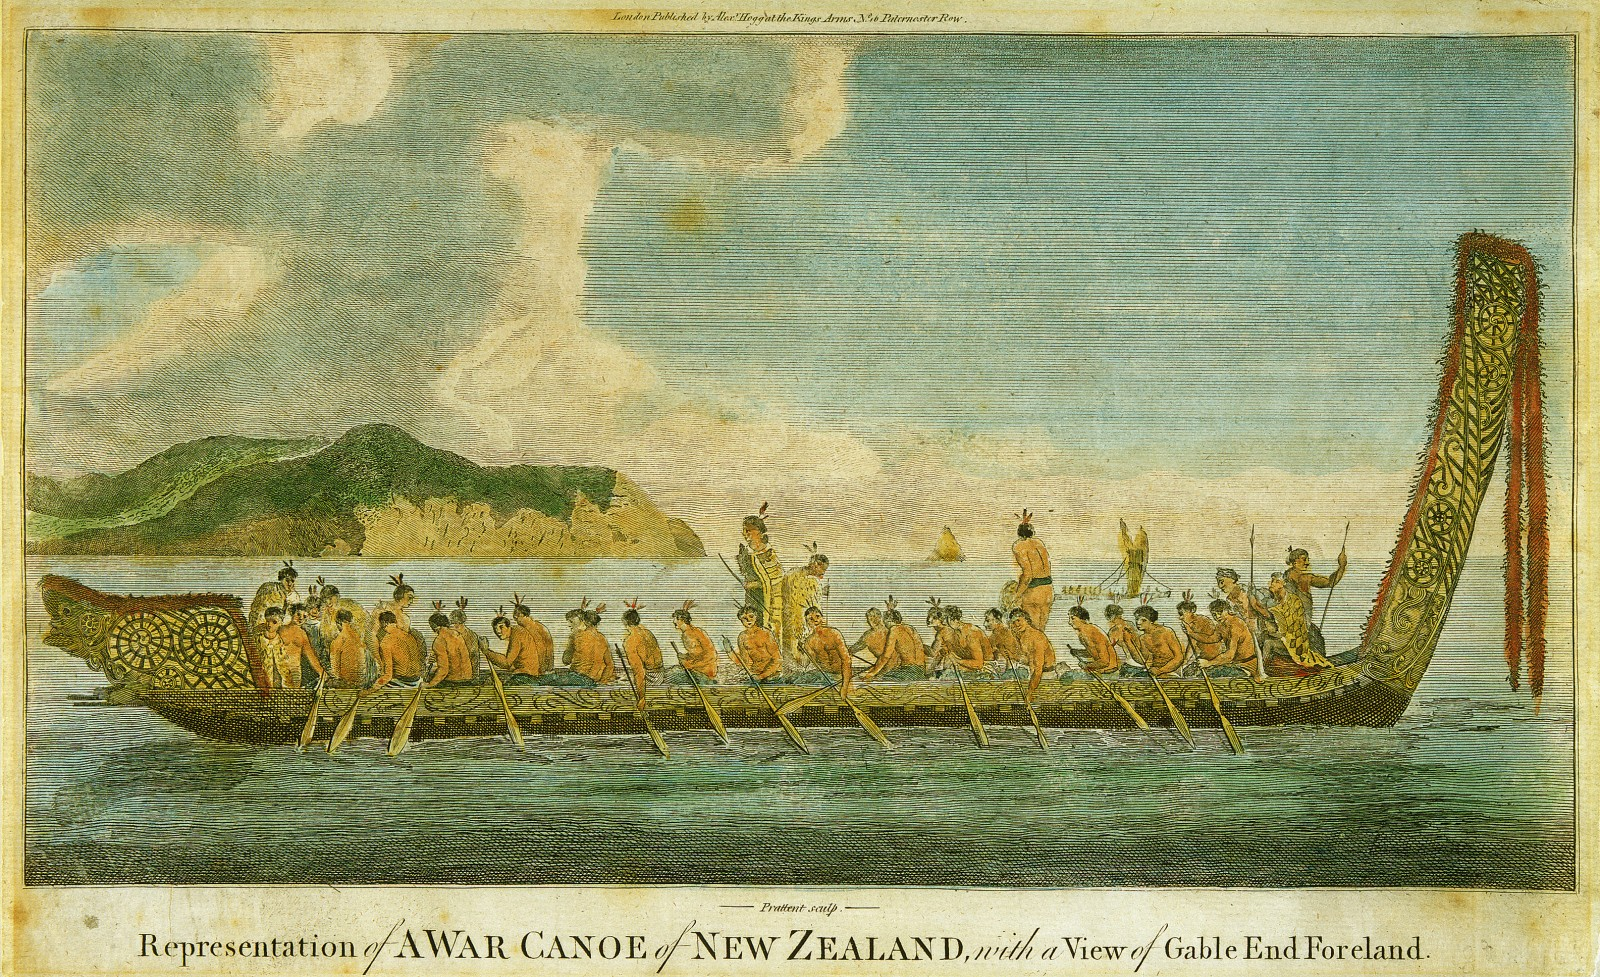 Maori, living in a cooler, less congenial climate than other Pacific peoples, were regarded by early navigators as a tougher, more warlike race than their cousins to the north